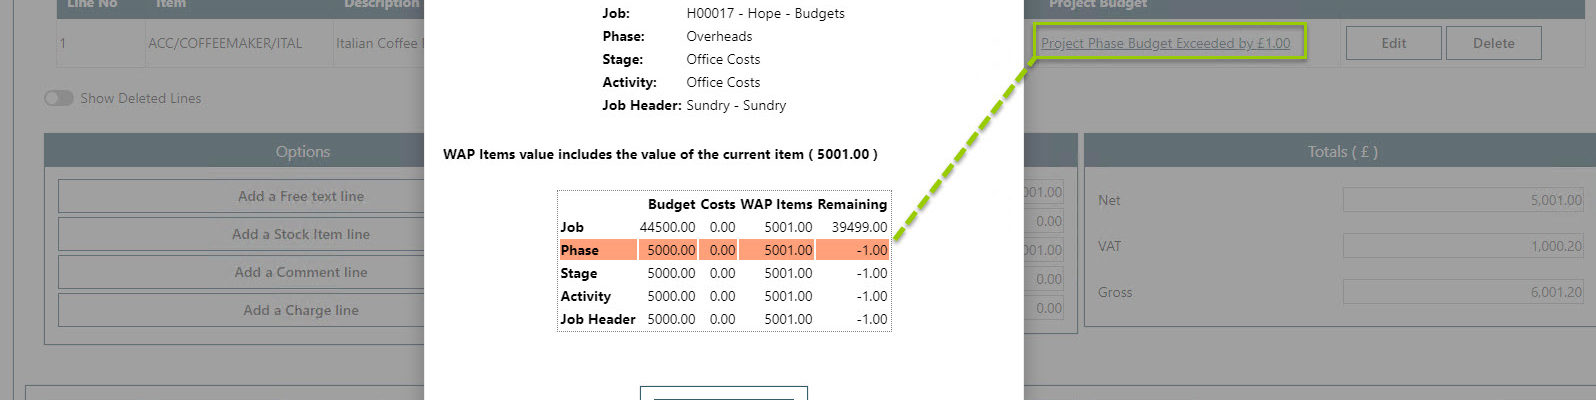 Sicon WAP Purchase Requisitions Help and User Guide - Requisition HUG Section 21.5 Image 5